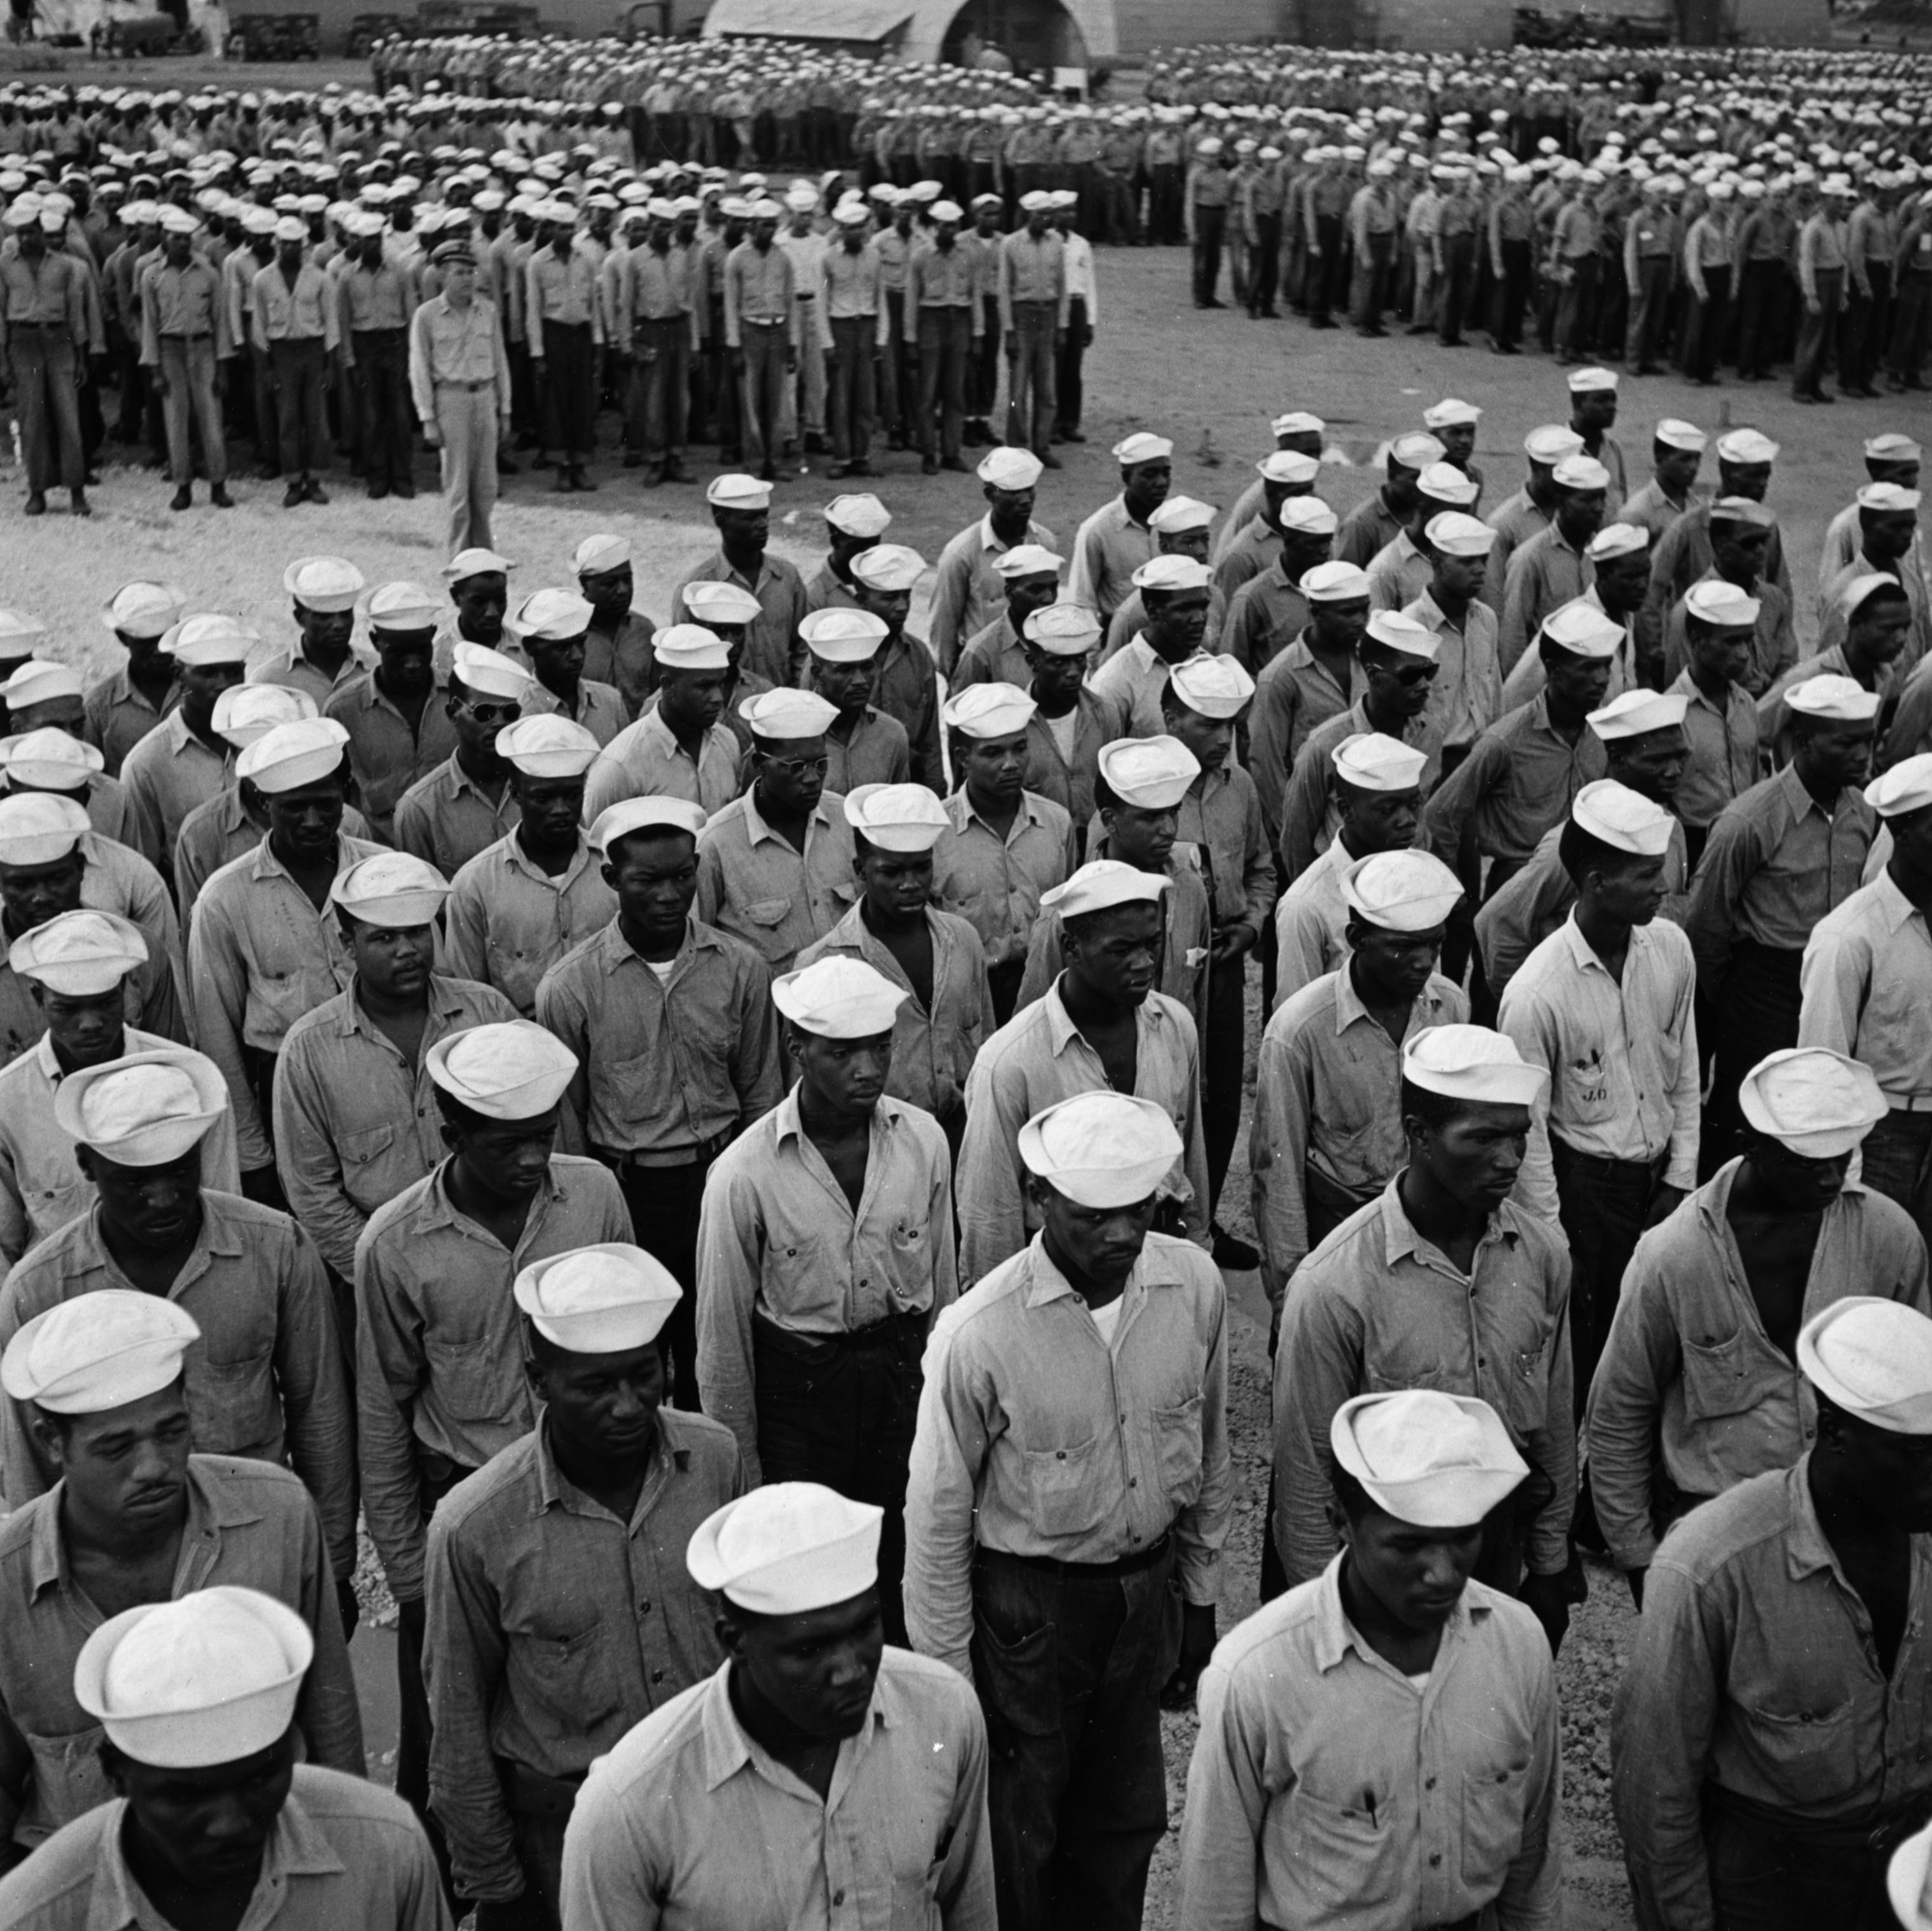 Sailors at the US Naval Supply Depot on Guam in 1945.